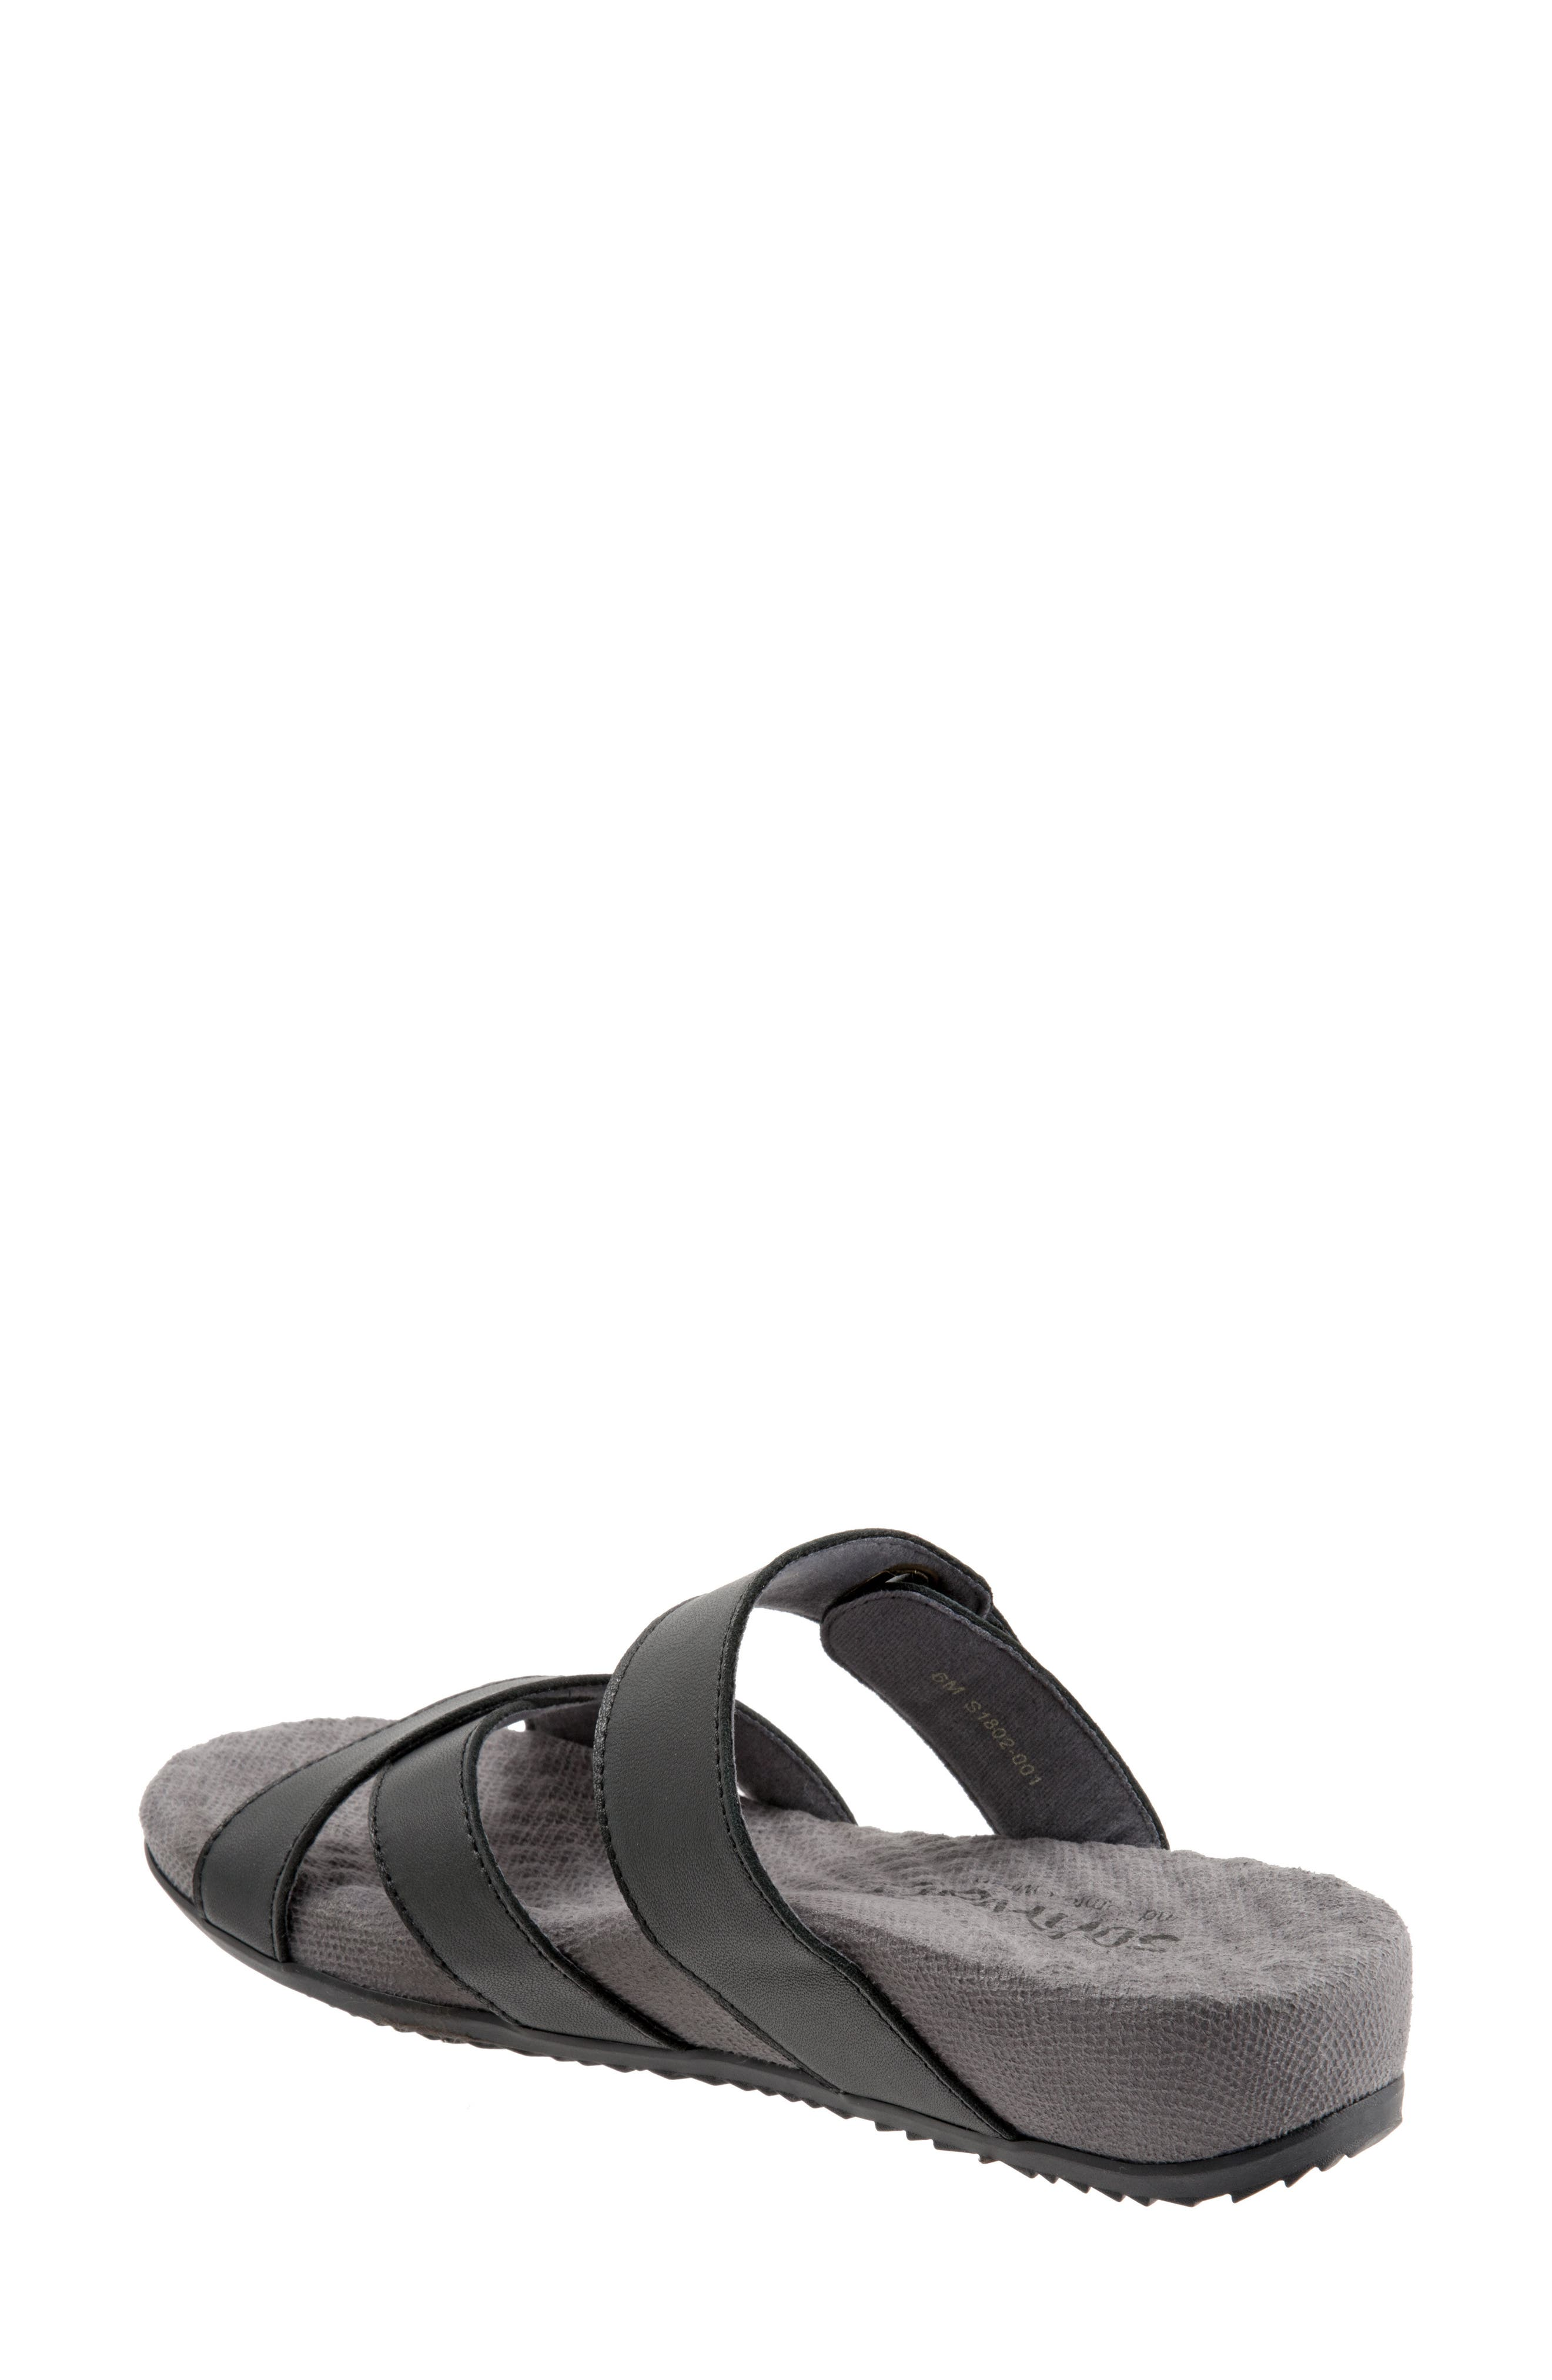 SOFTWALK<SUP>®</SUP>, Brimley Sandal, Alternate thumbnail 2, color, BLACK LEATHER